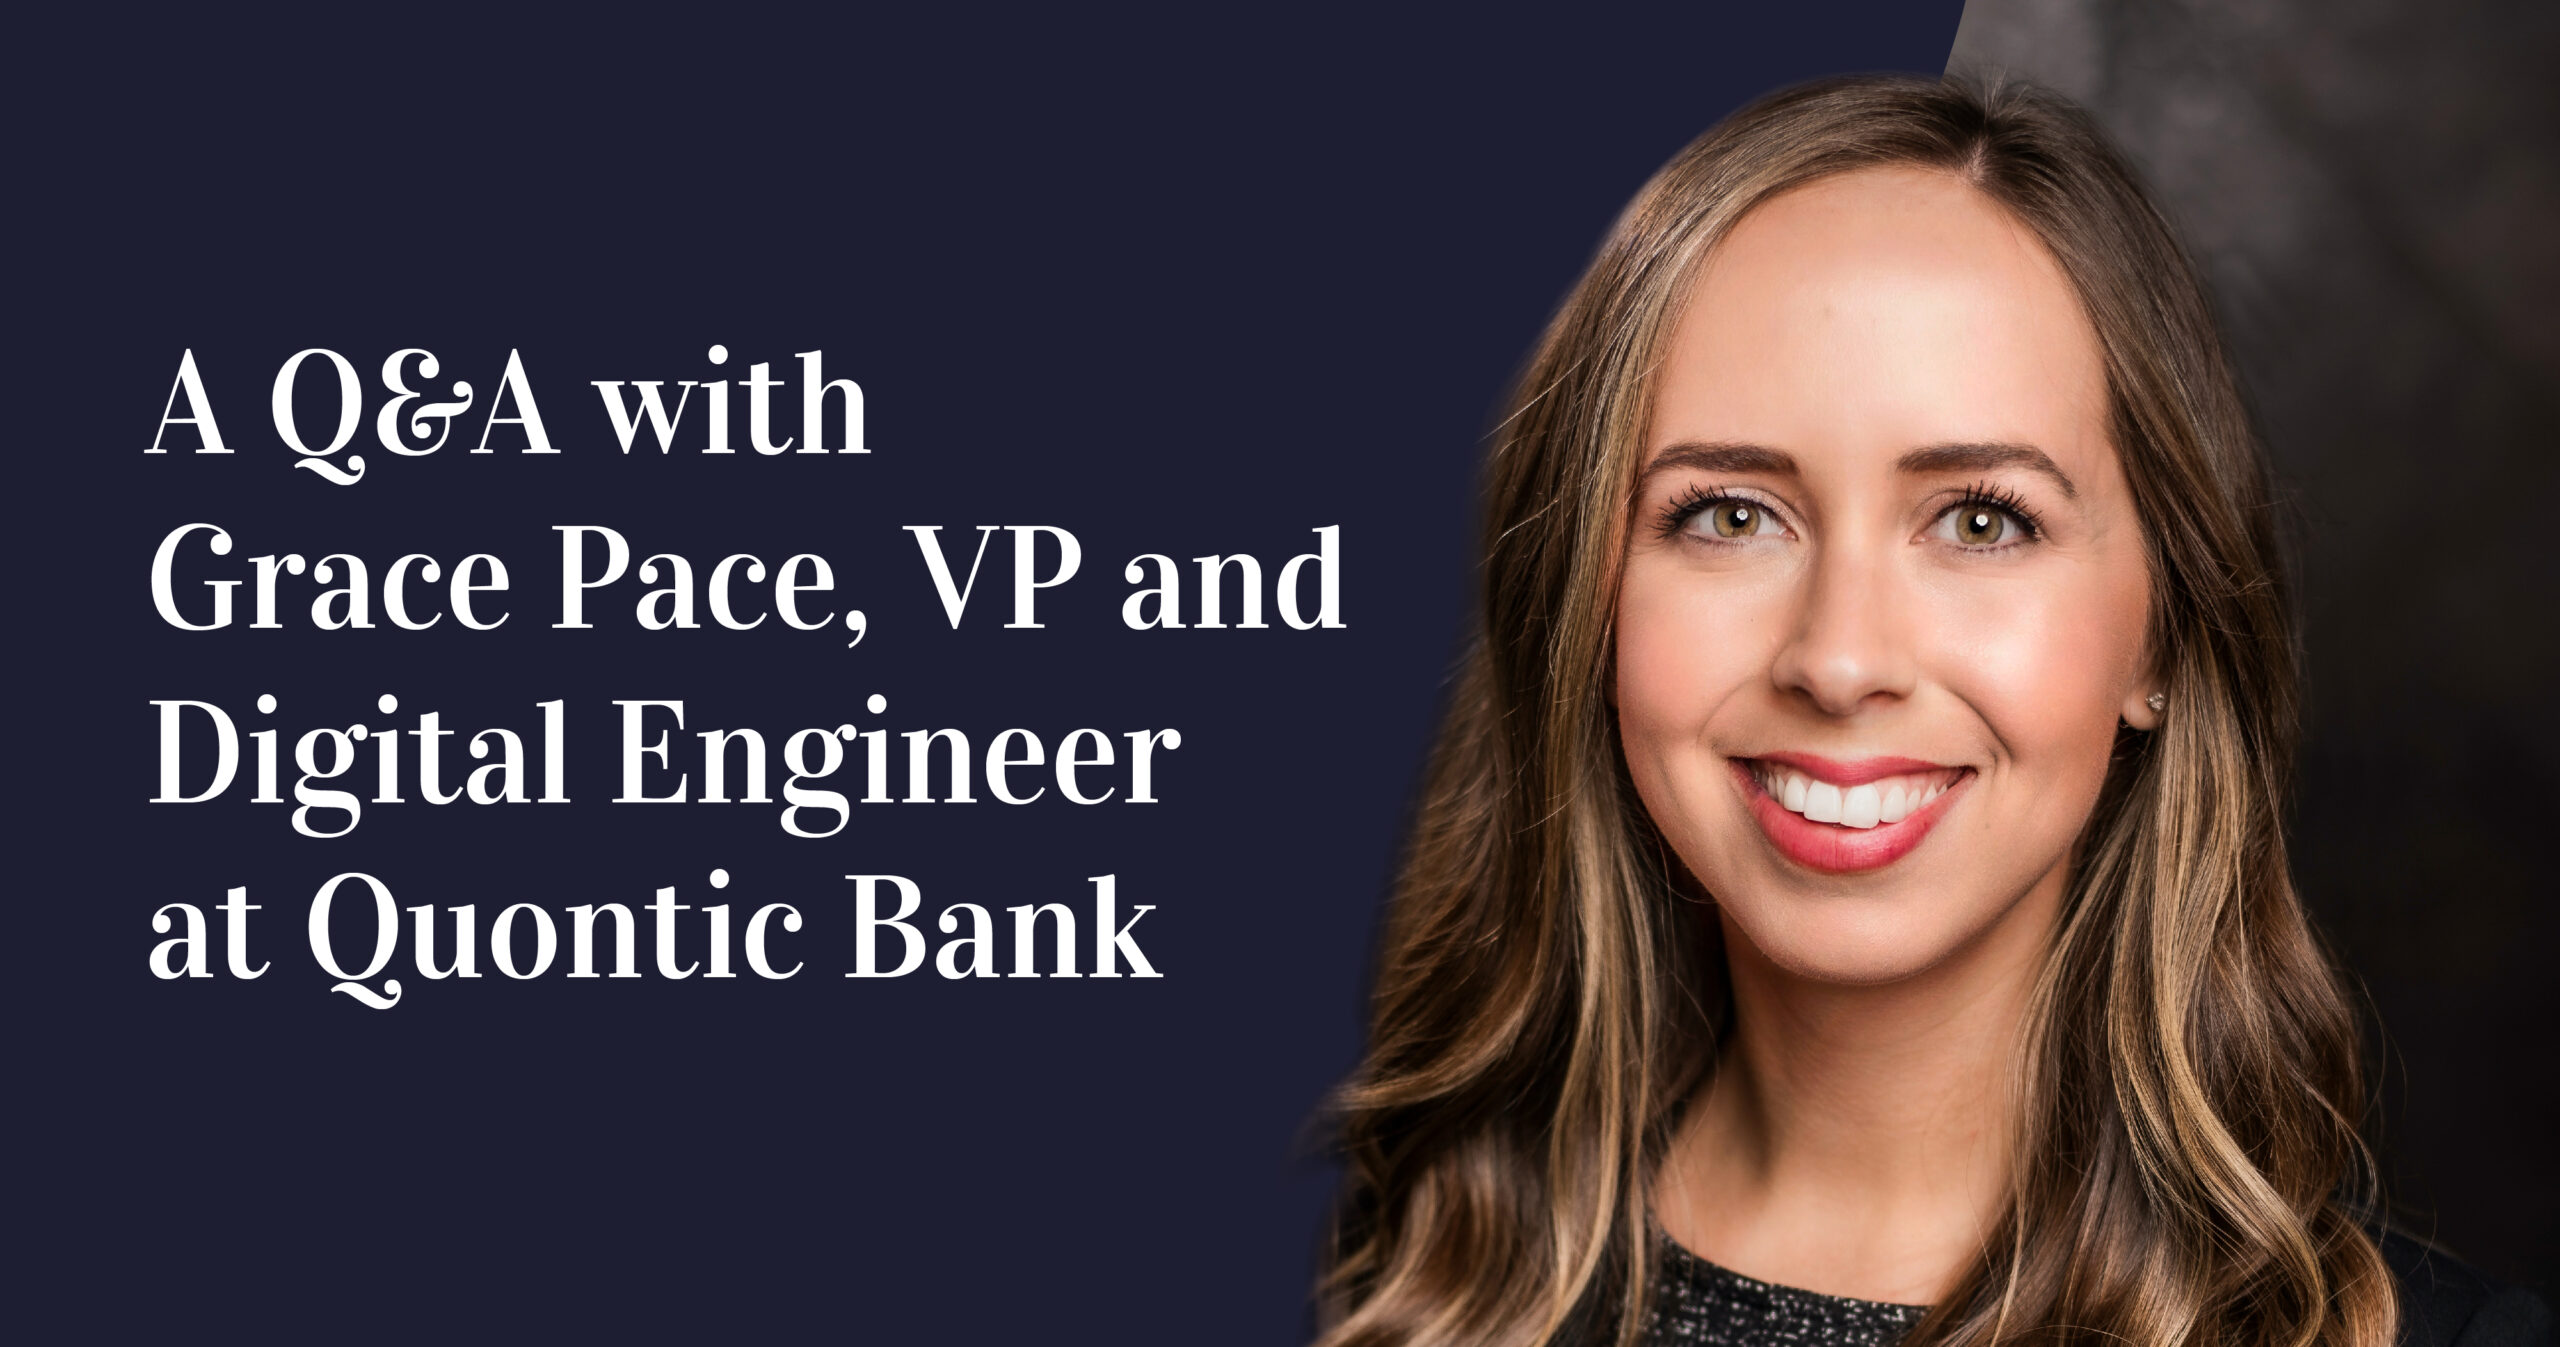 Grace Pace at Quontic Bank